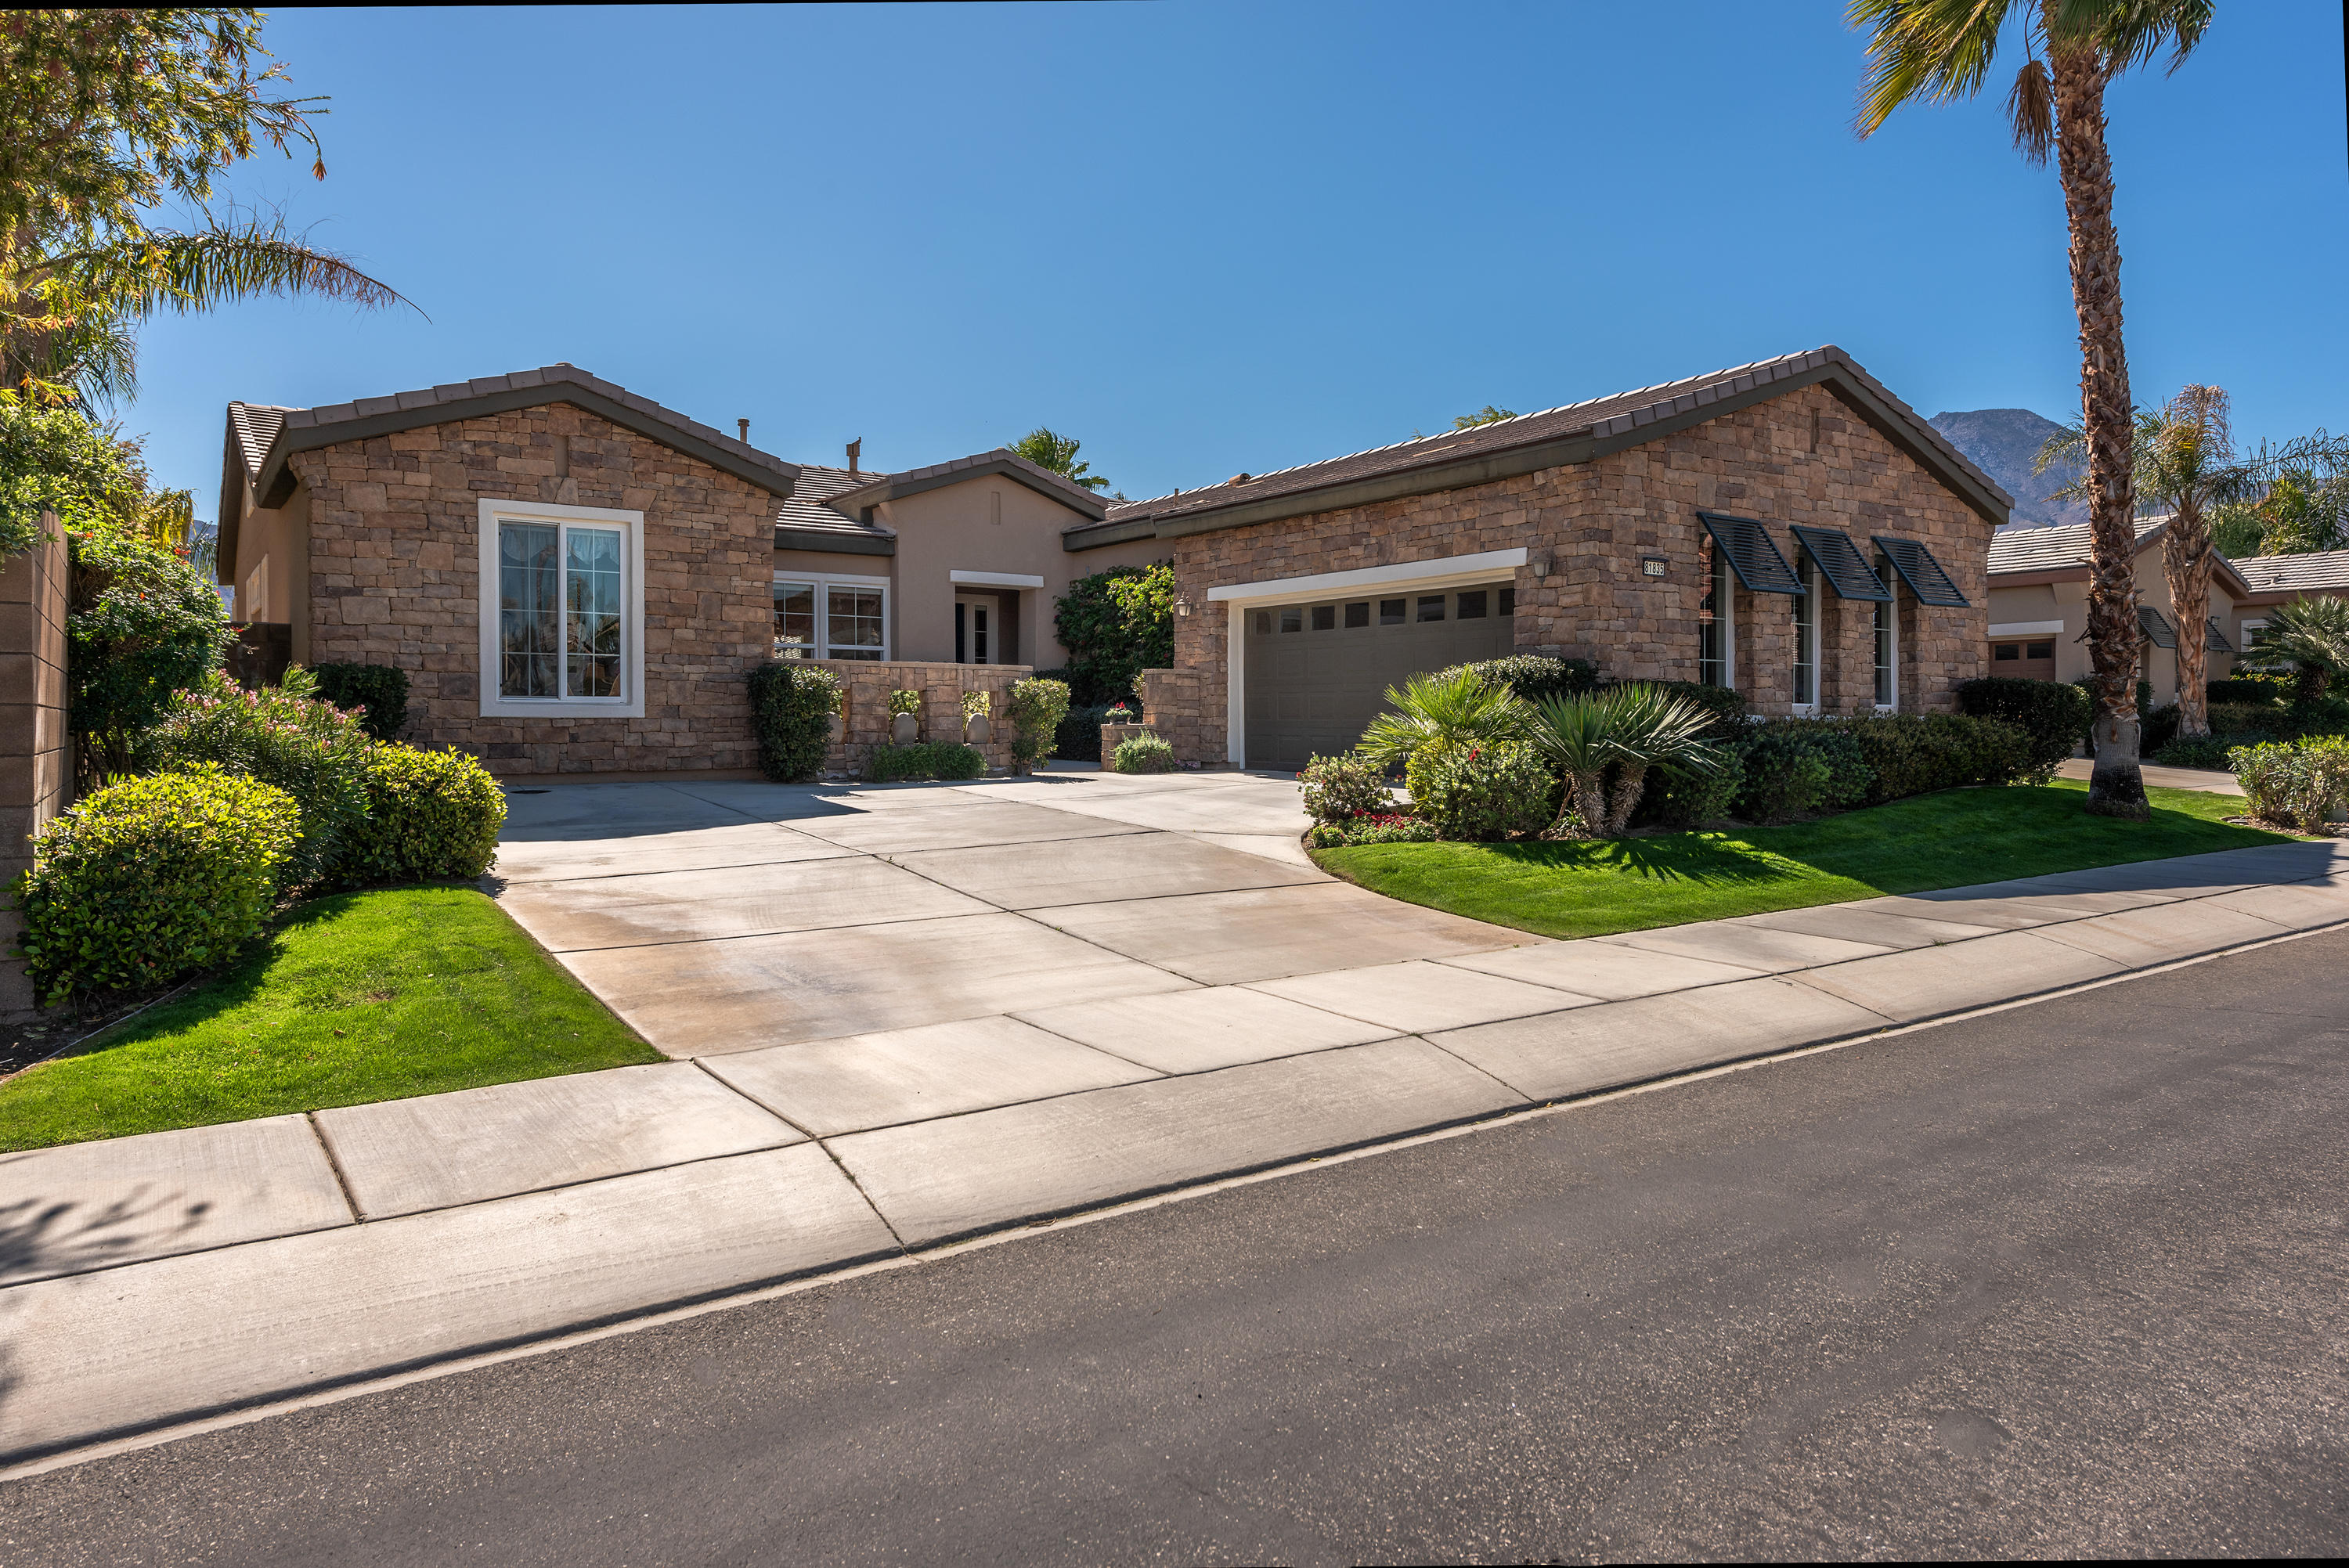 81835 Eagle Claw Drive, La Quinta, California 92253, 2 Bedrooms Bedrooms, ,3 BathroomsBathrooms,Residential,For Sale,81835 Eagle Claw Drive,219040130